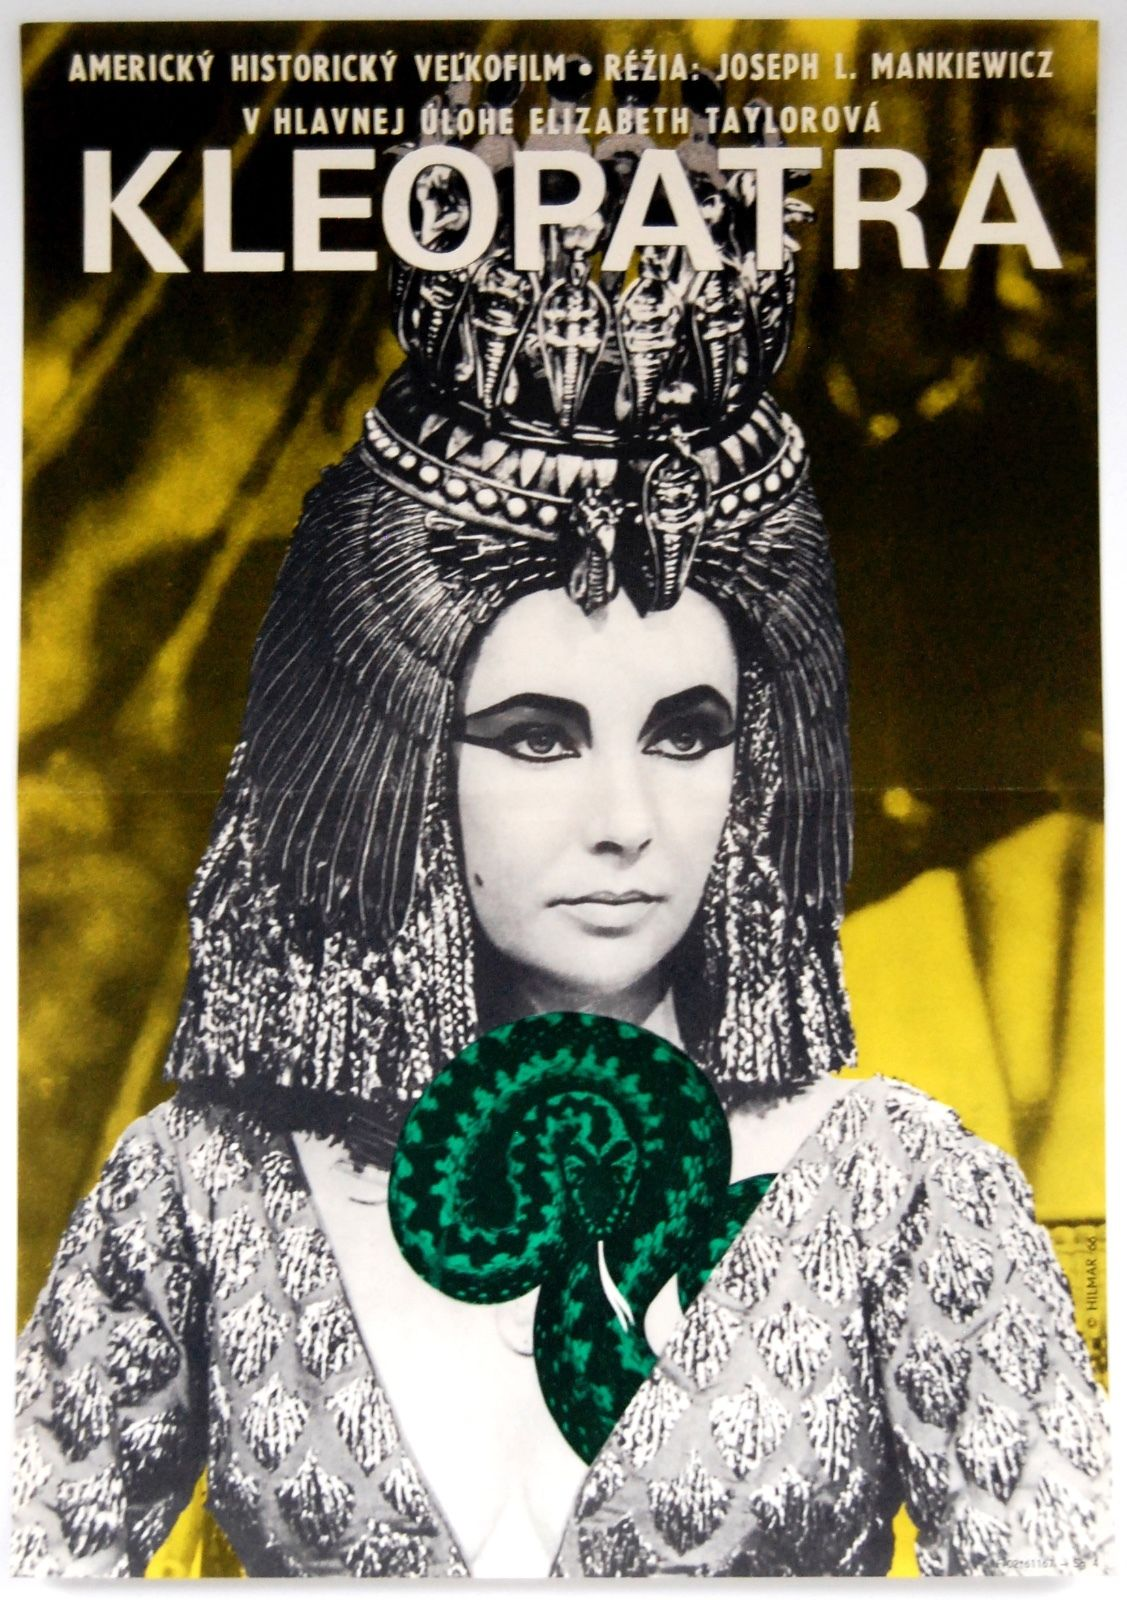 elizabeth-taylor-cleopatra-original-1964-czech-movie-poster